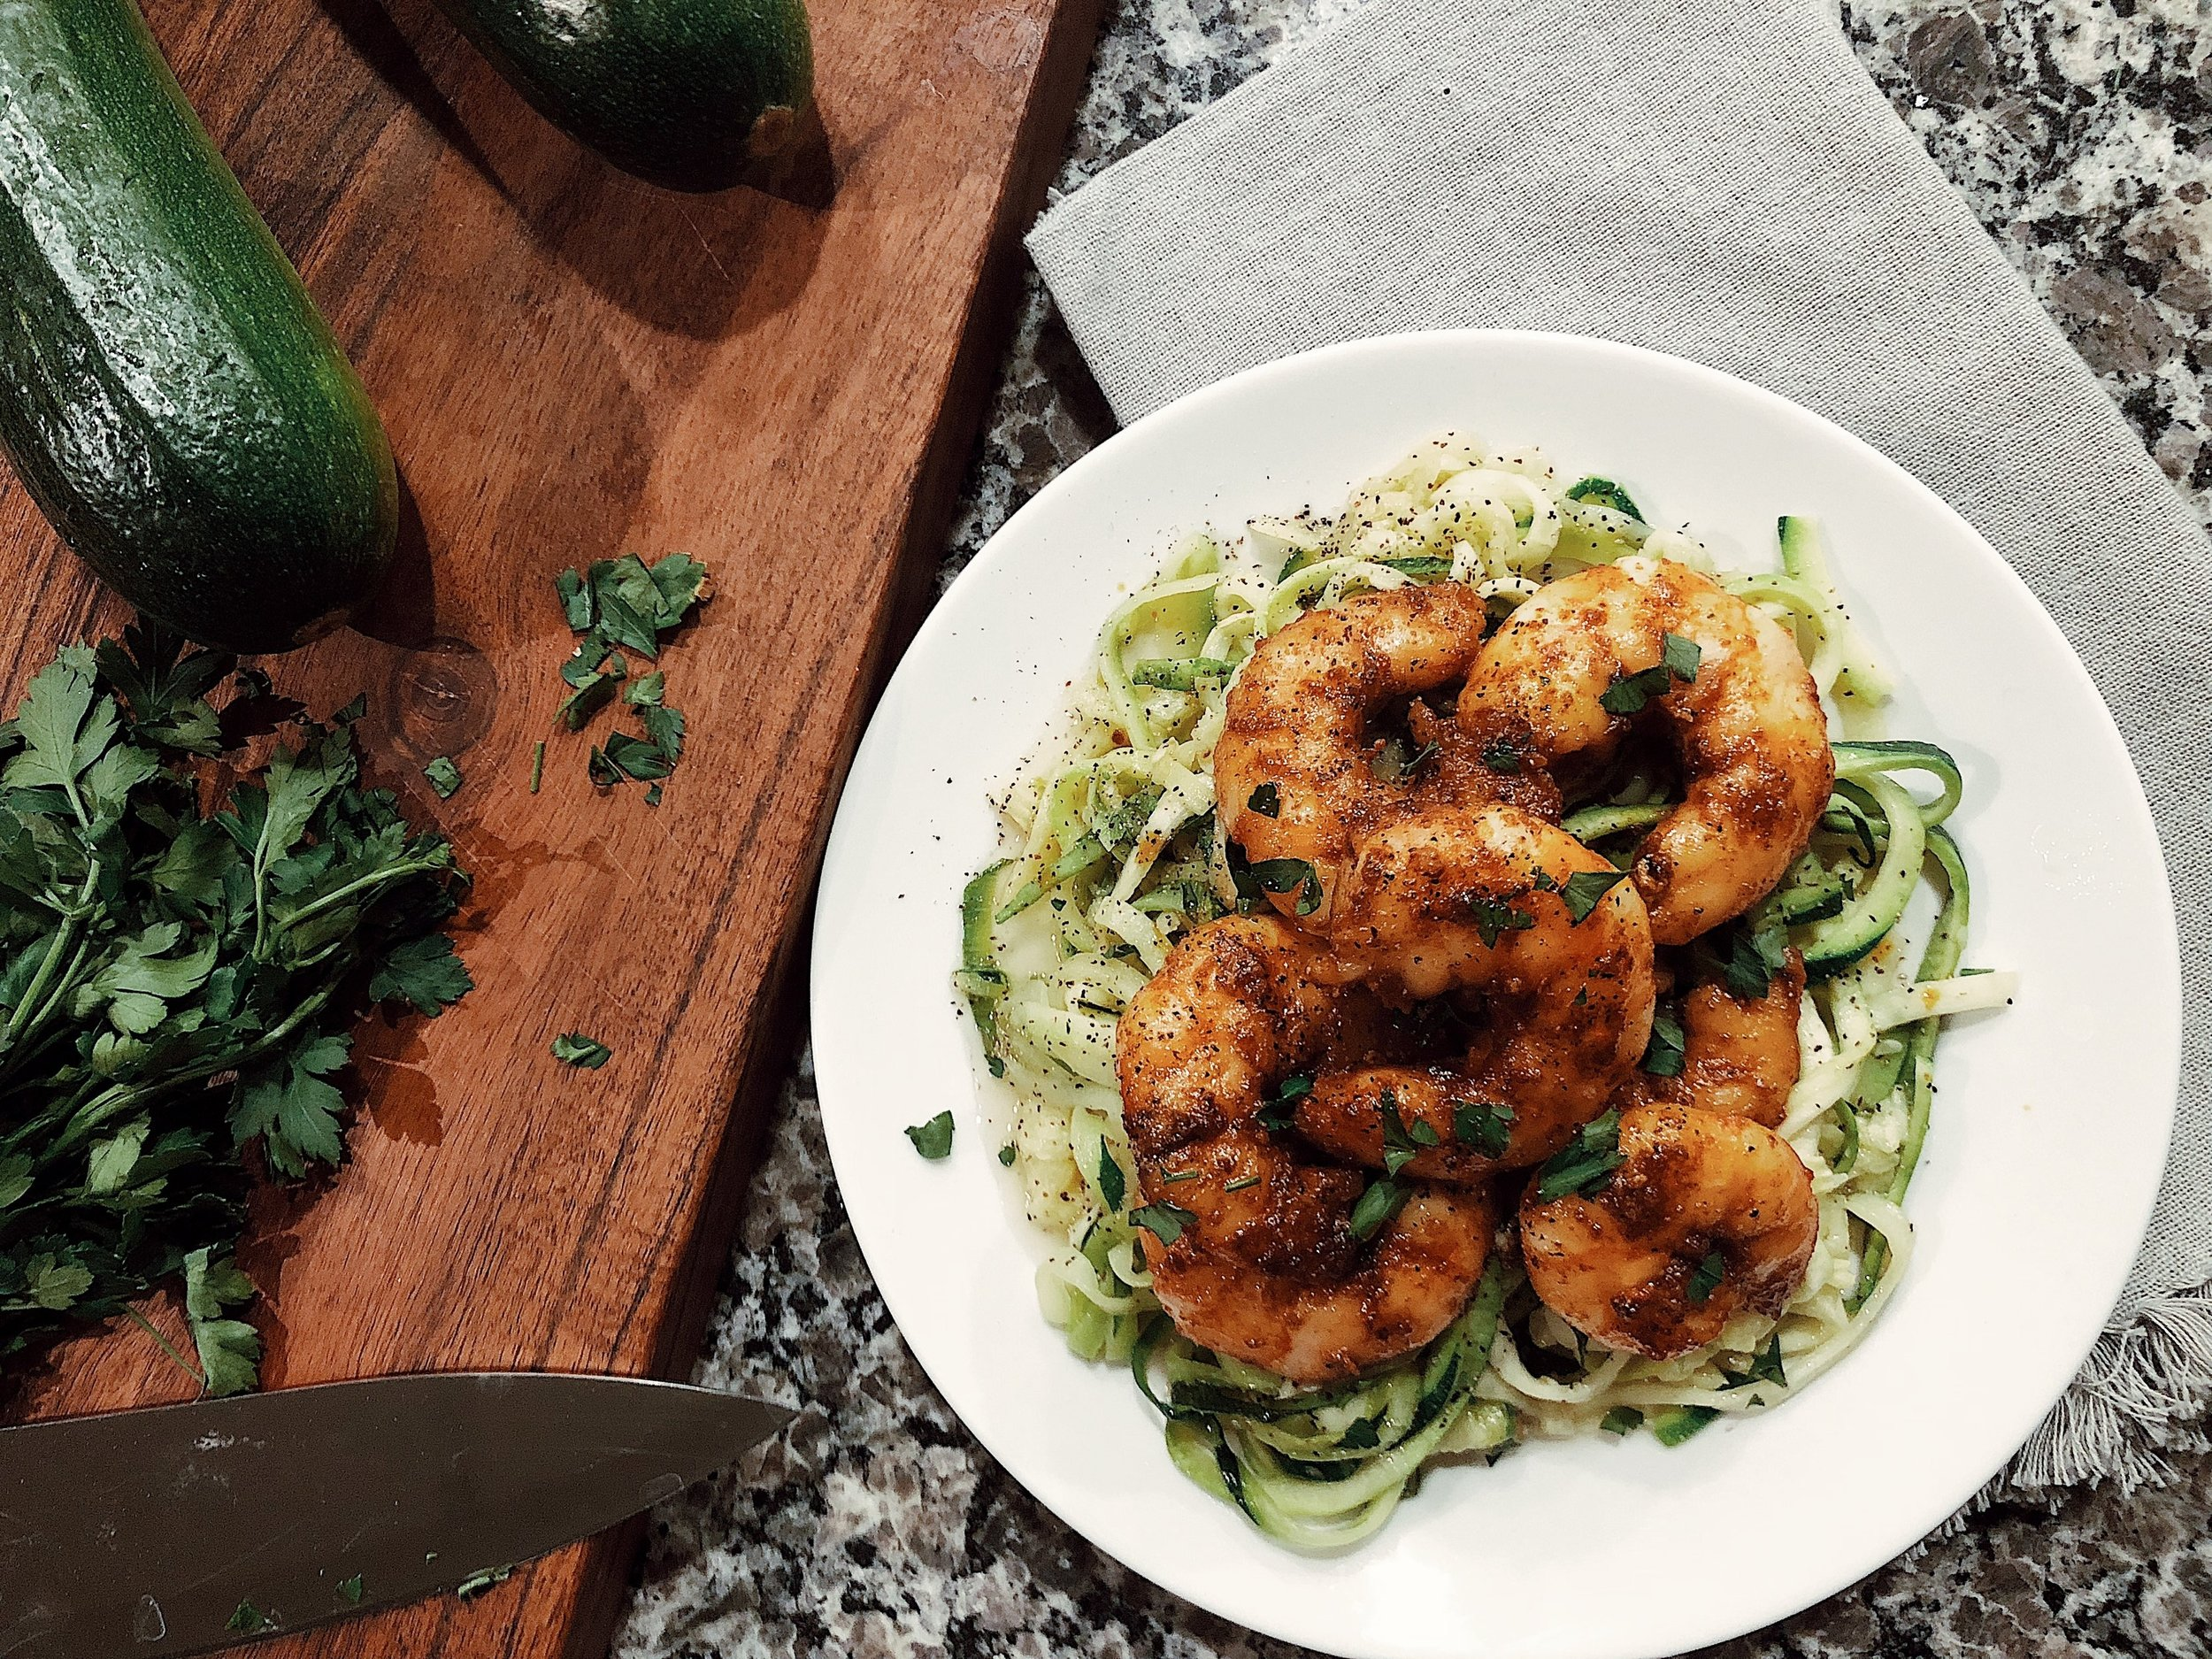 blackened-shrimp-zucchini-pasta-healthy-recipe-health-wellness-colleen-gallagher-the-second-muse.jpg